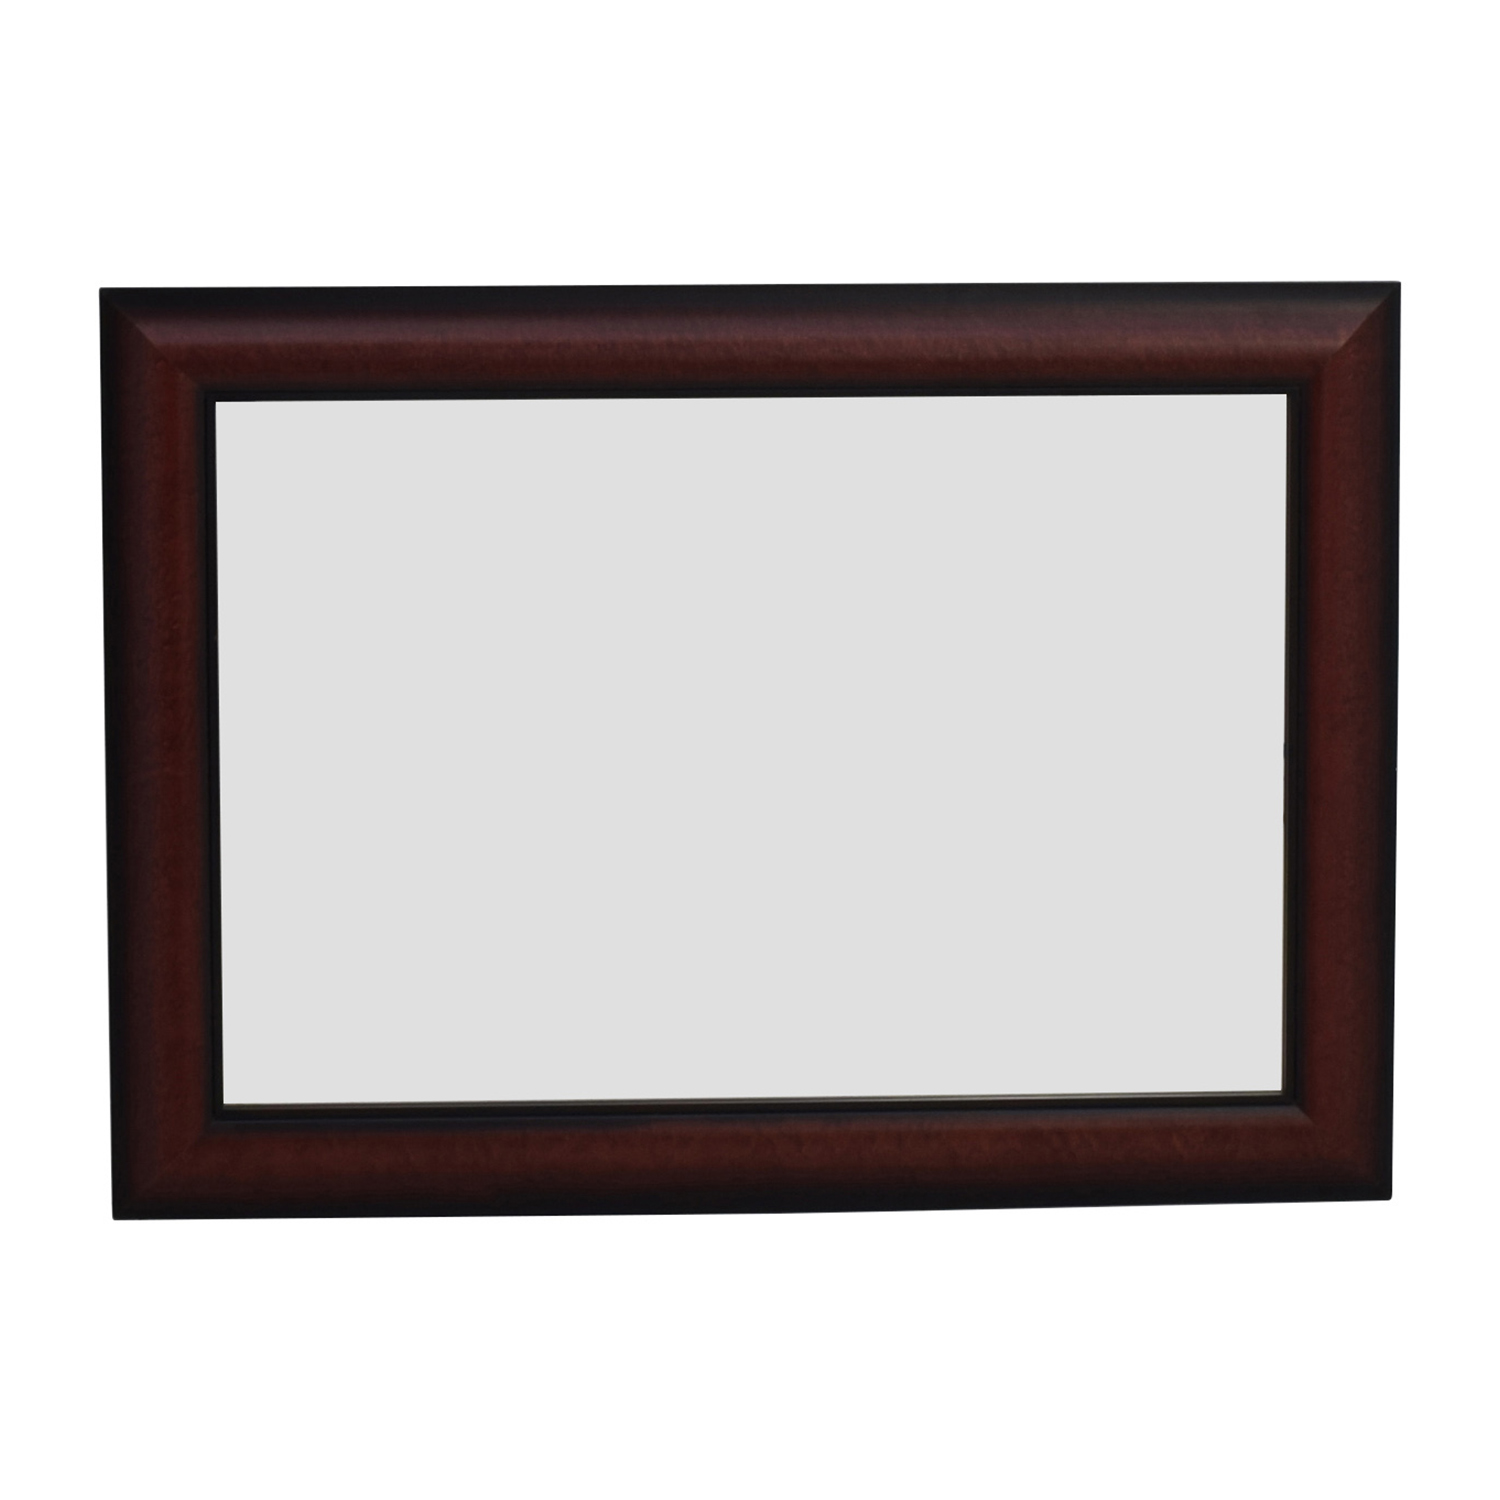 Cherry Wood Rectangular Wall Mirror nj